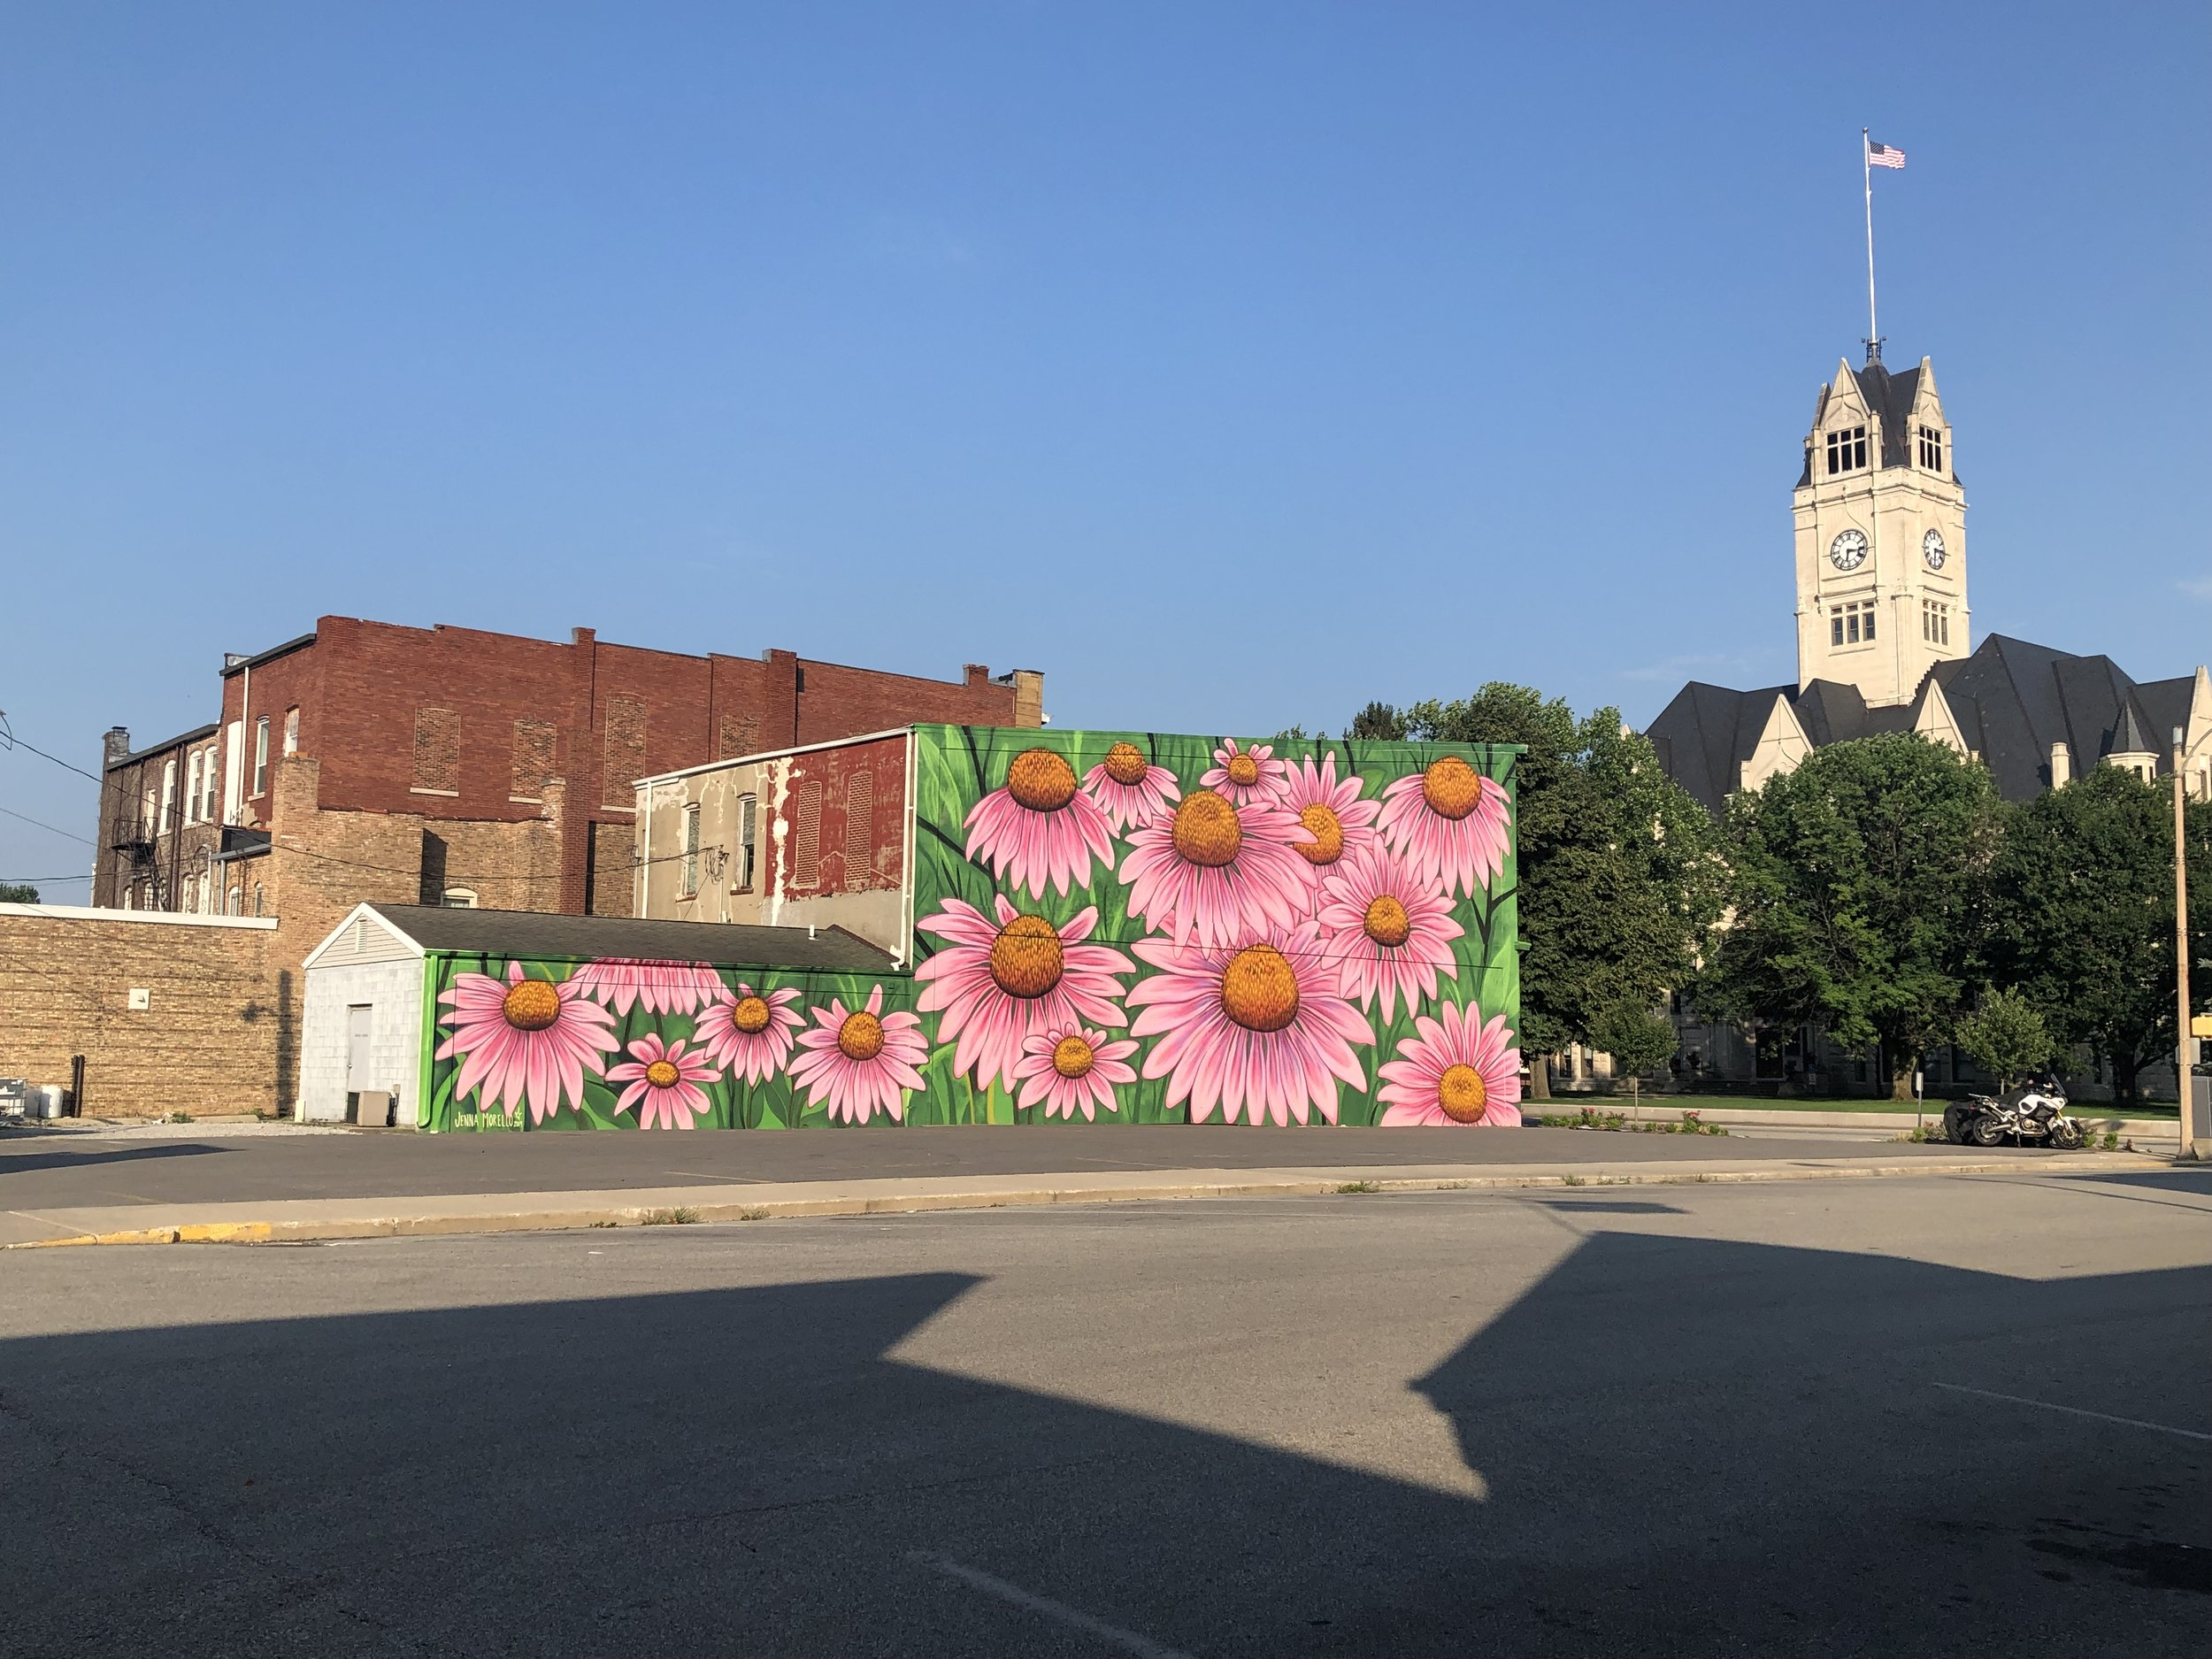 MURAL 14 - This large scale piece by Jenna Morello depicts local Indiana cone flowers and begins the second block of the RENARTWLK. Now these beautiful blooms will always be in season…